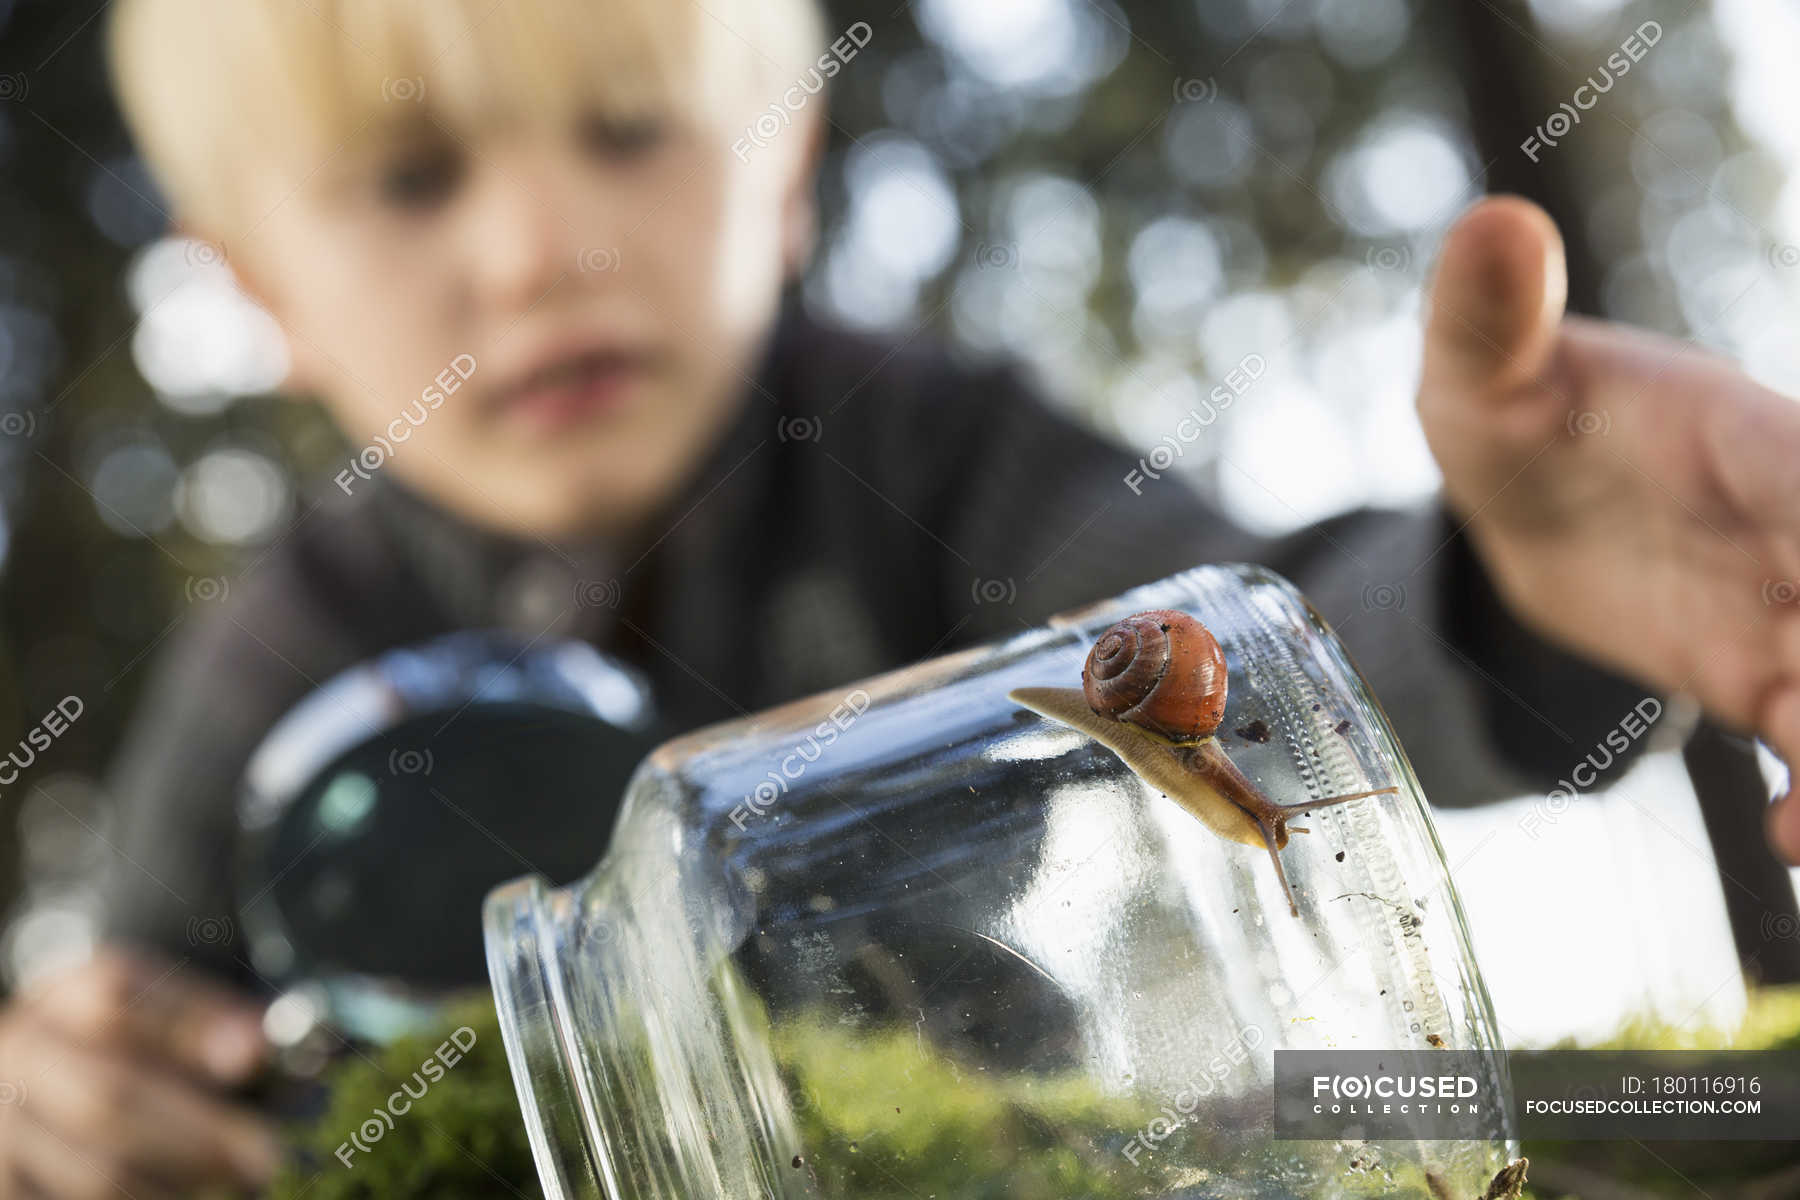 snail on a glass with little boy in the background — stock photo